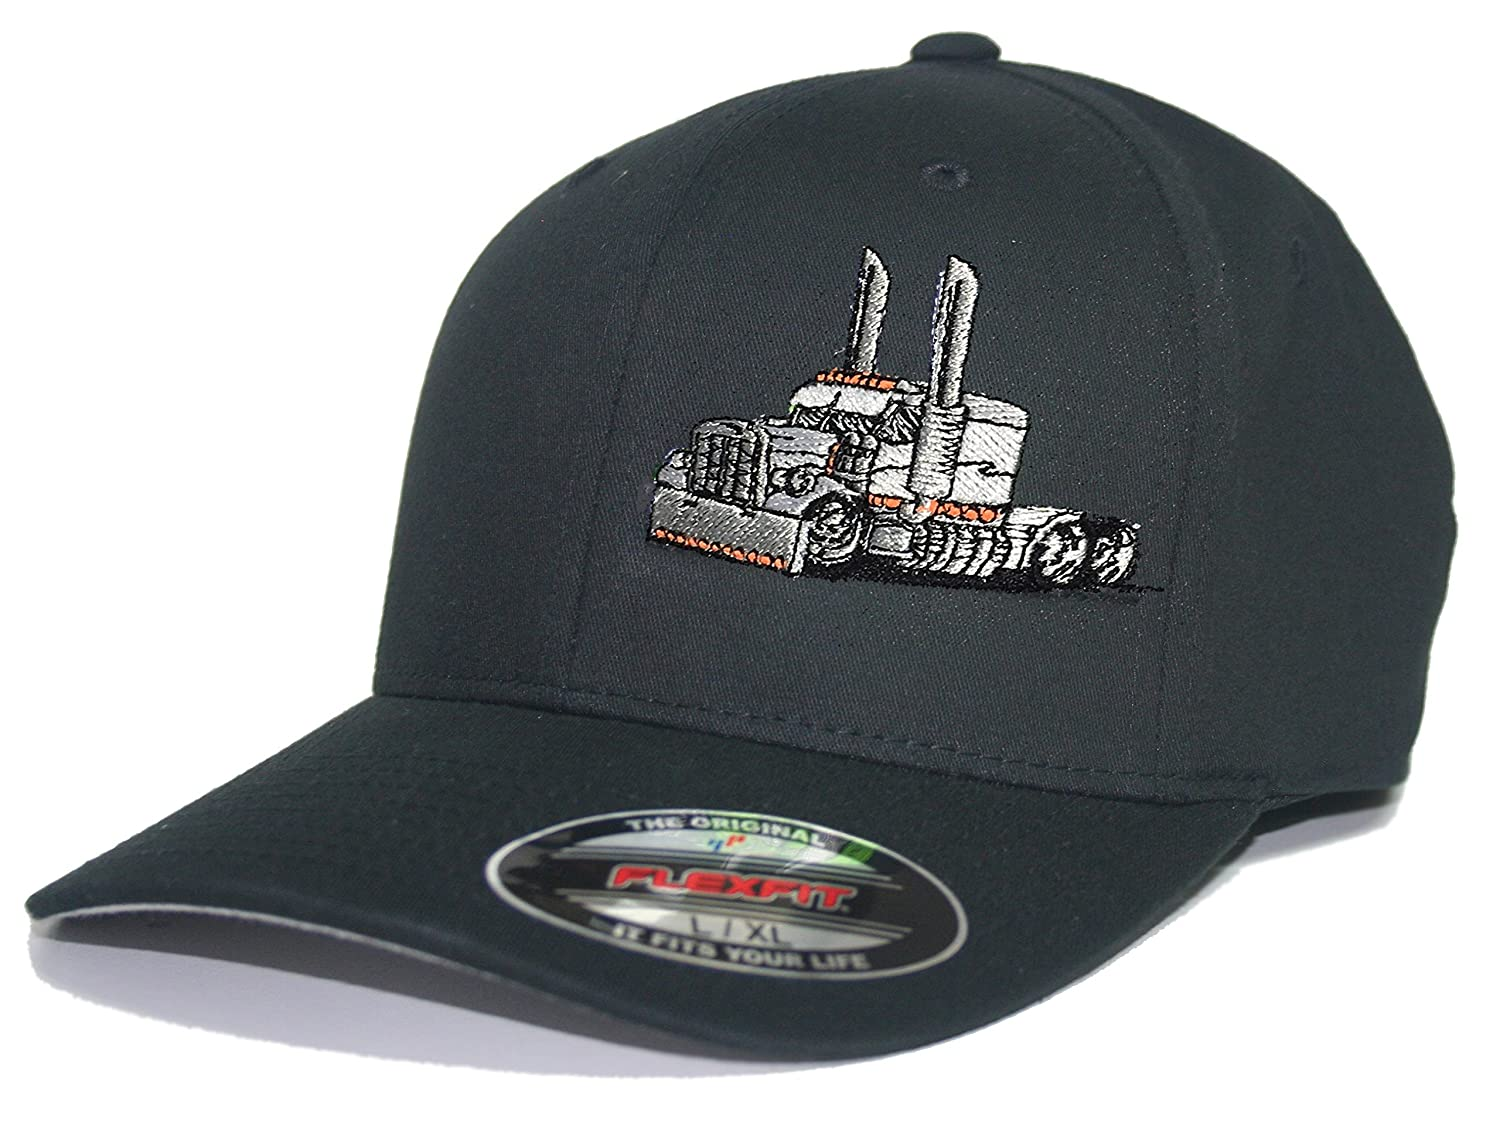 7306c983fd0ef JUST RIDE Trucker Hat Diesel Big RIG Cap Flexfit  Amazon.ca  Clothing    Accessories